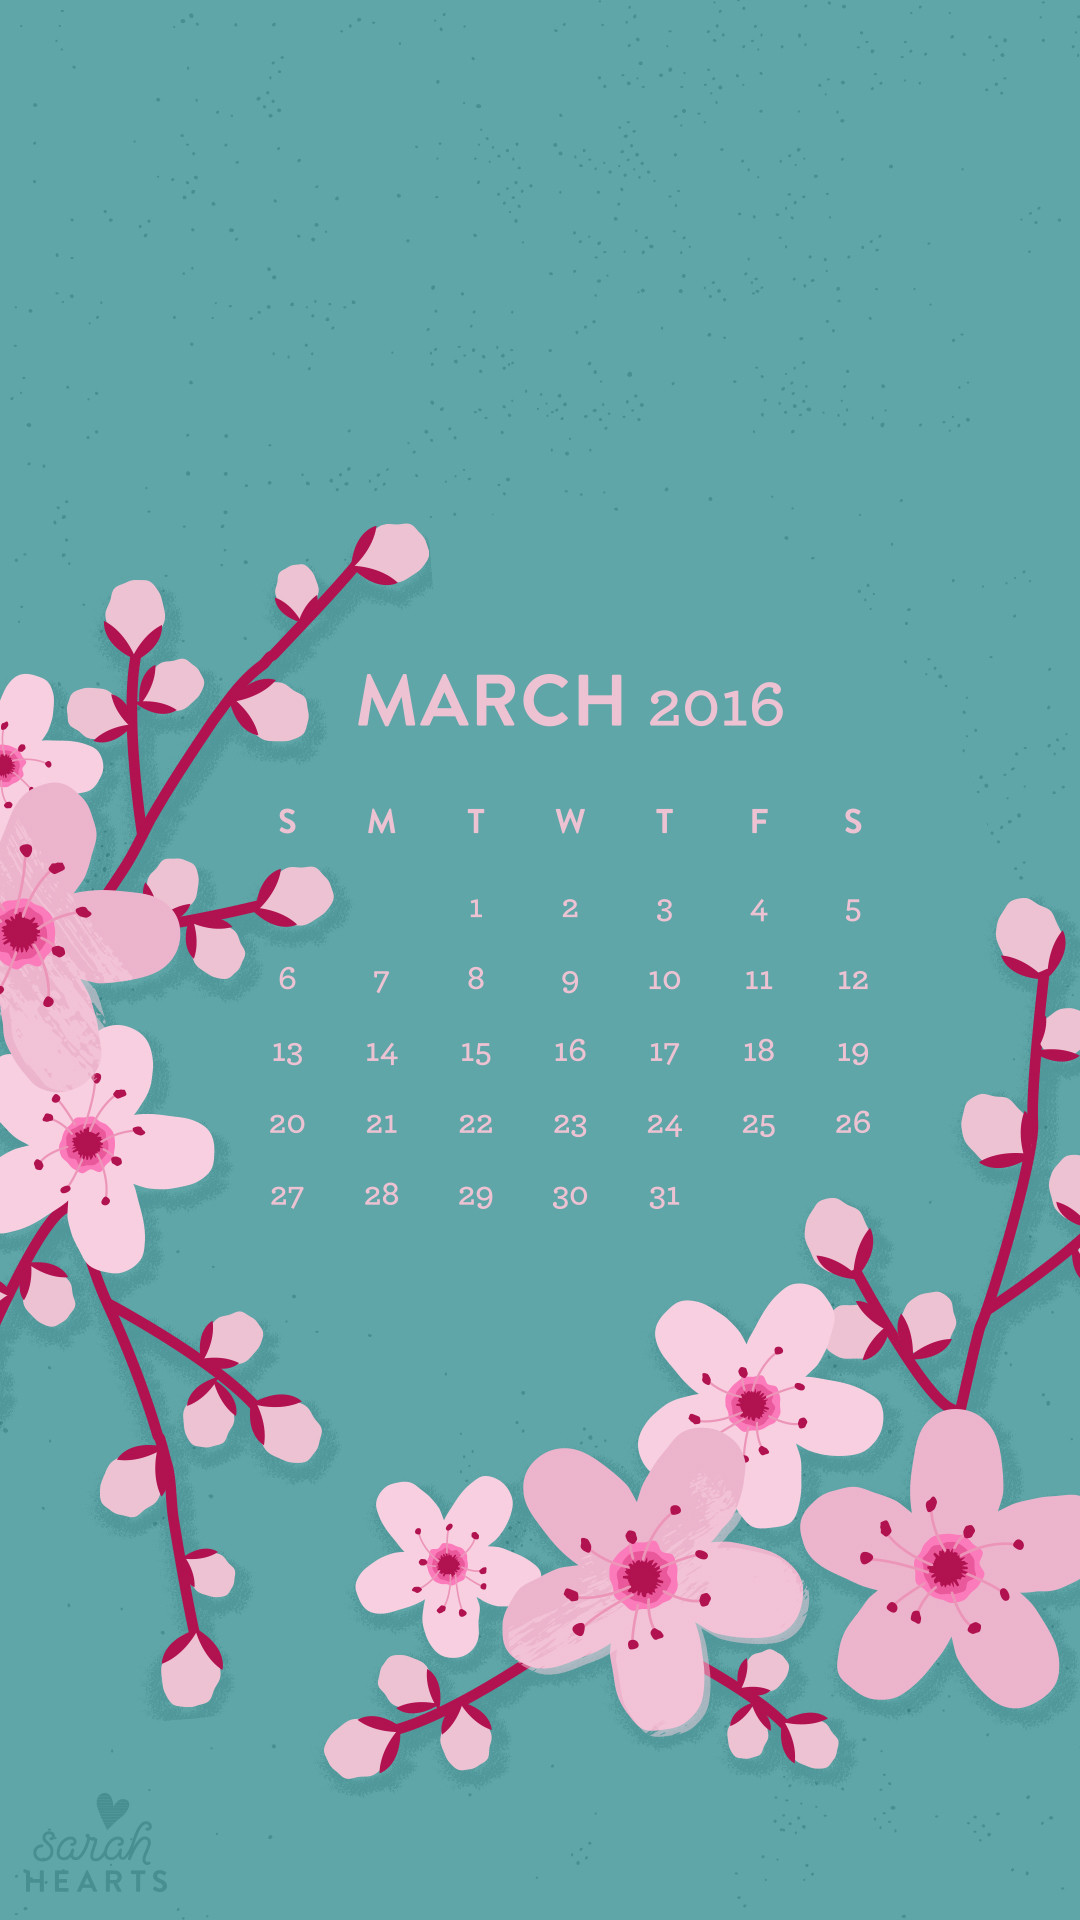 2560x1440px 2560x1440 Wallpaper For Youtube: March Calendar Wallpaper (77+ Images